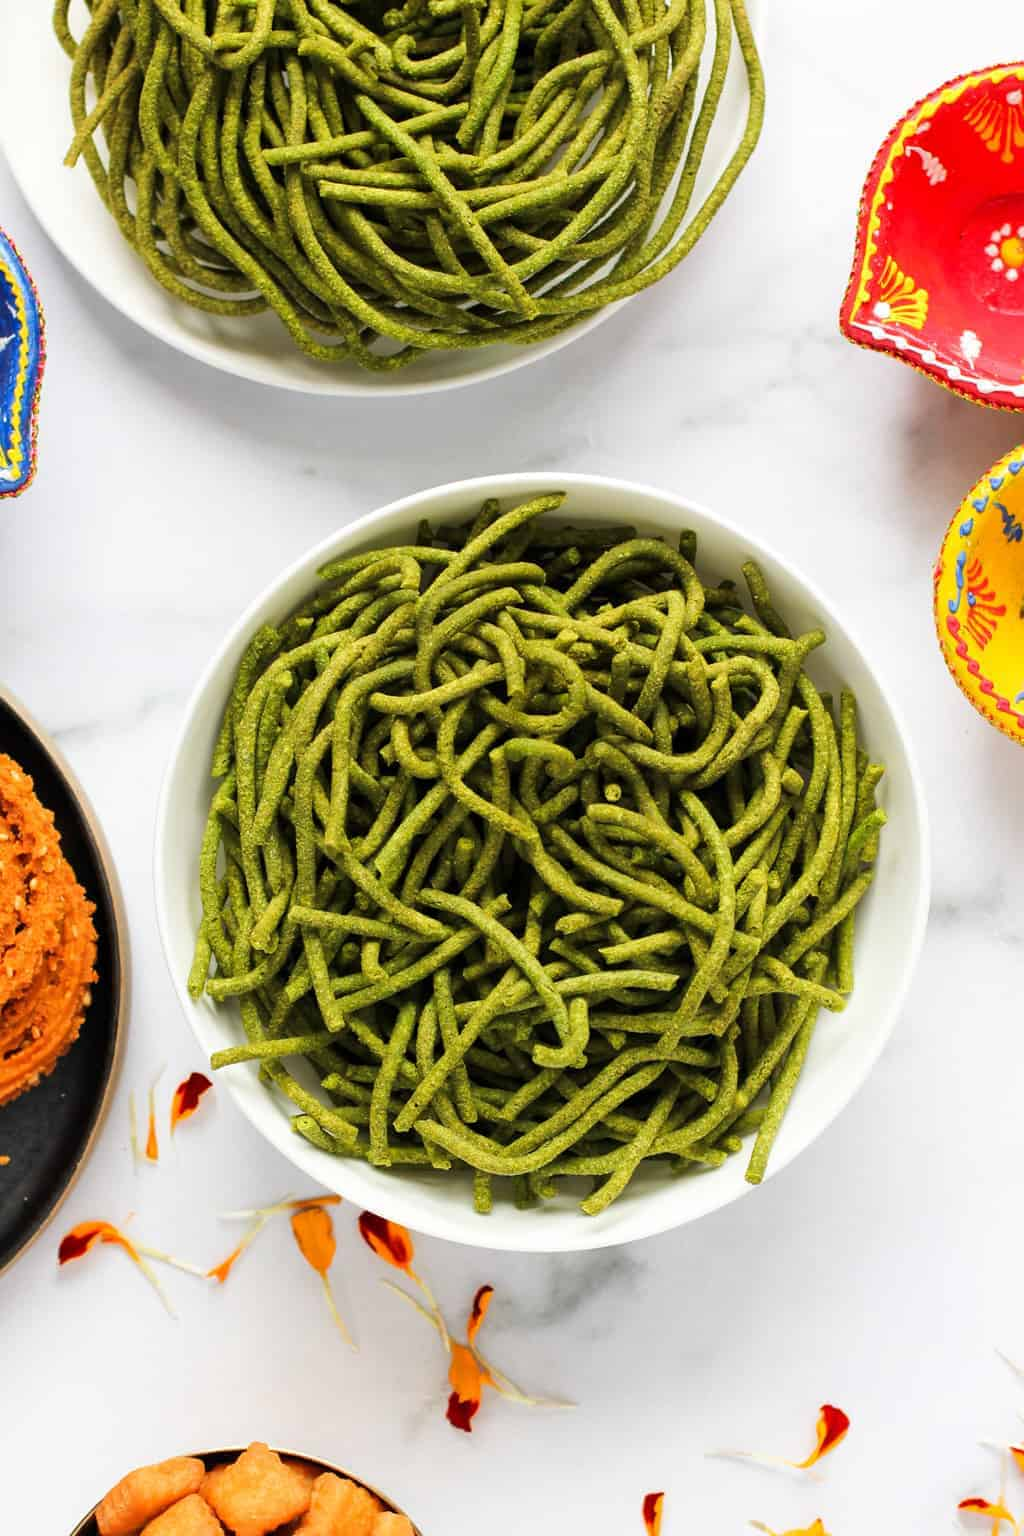 spinach sev in a bowl with other diwali snacks on the side